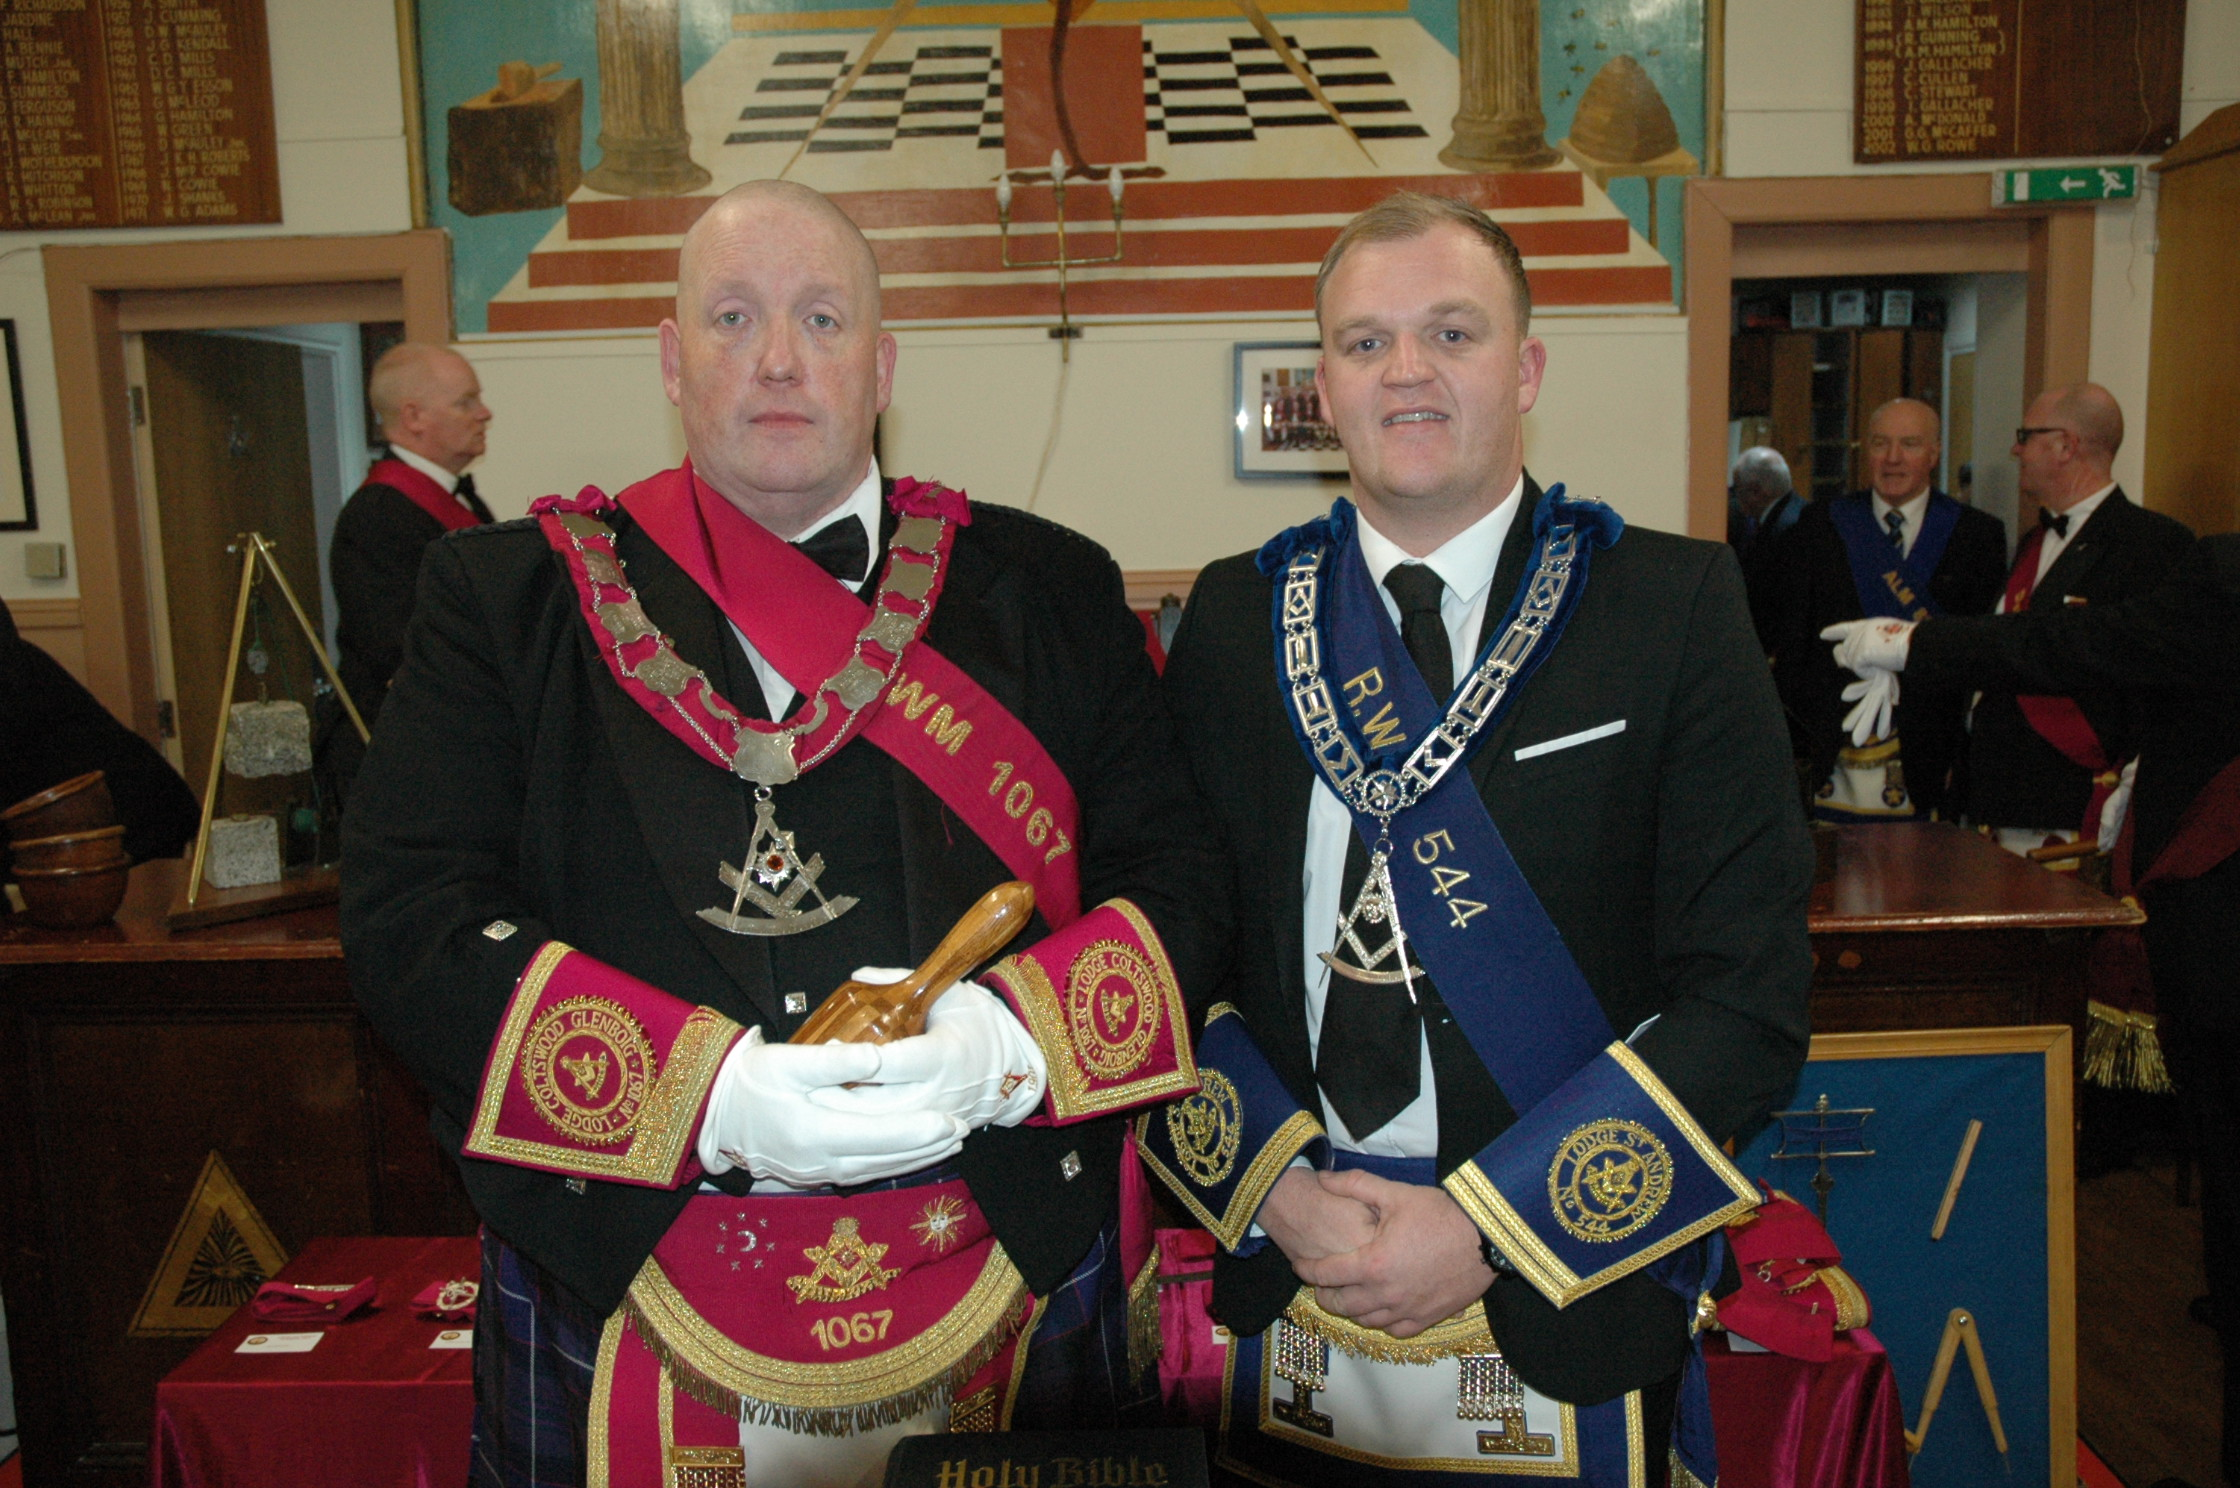 Lodge Coltswood Glenboig No.1067